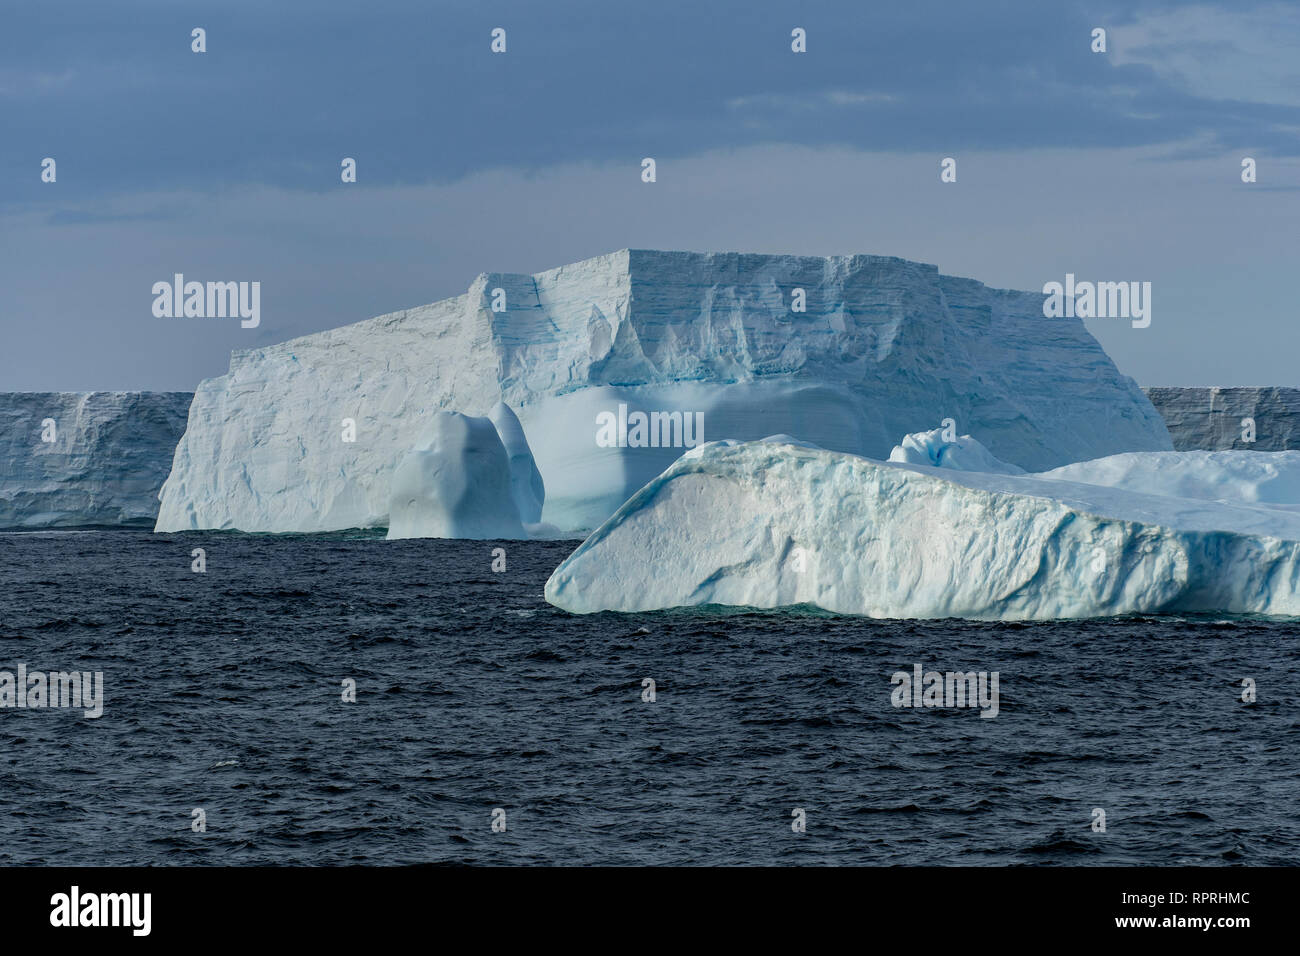 Icebergs near South Orkney Islands - Stock Image